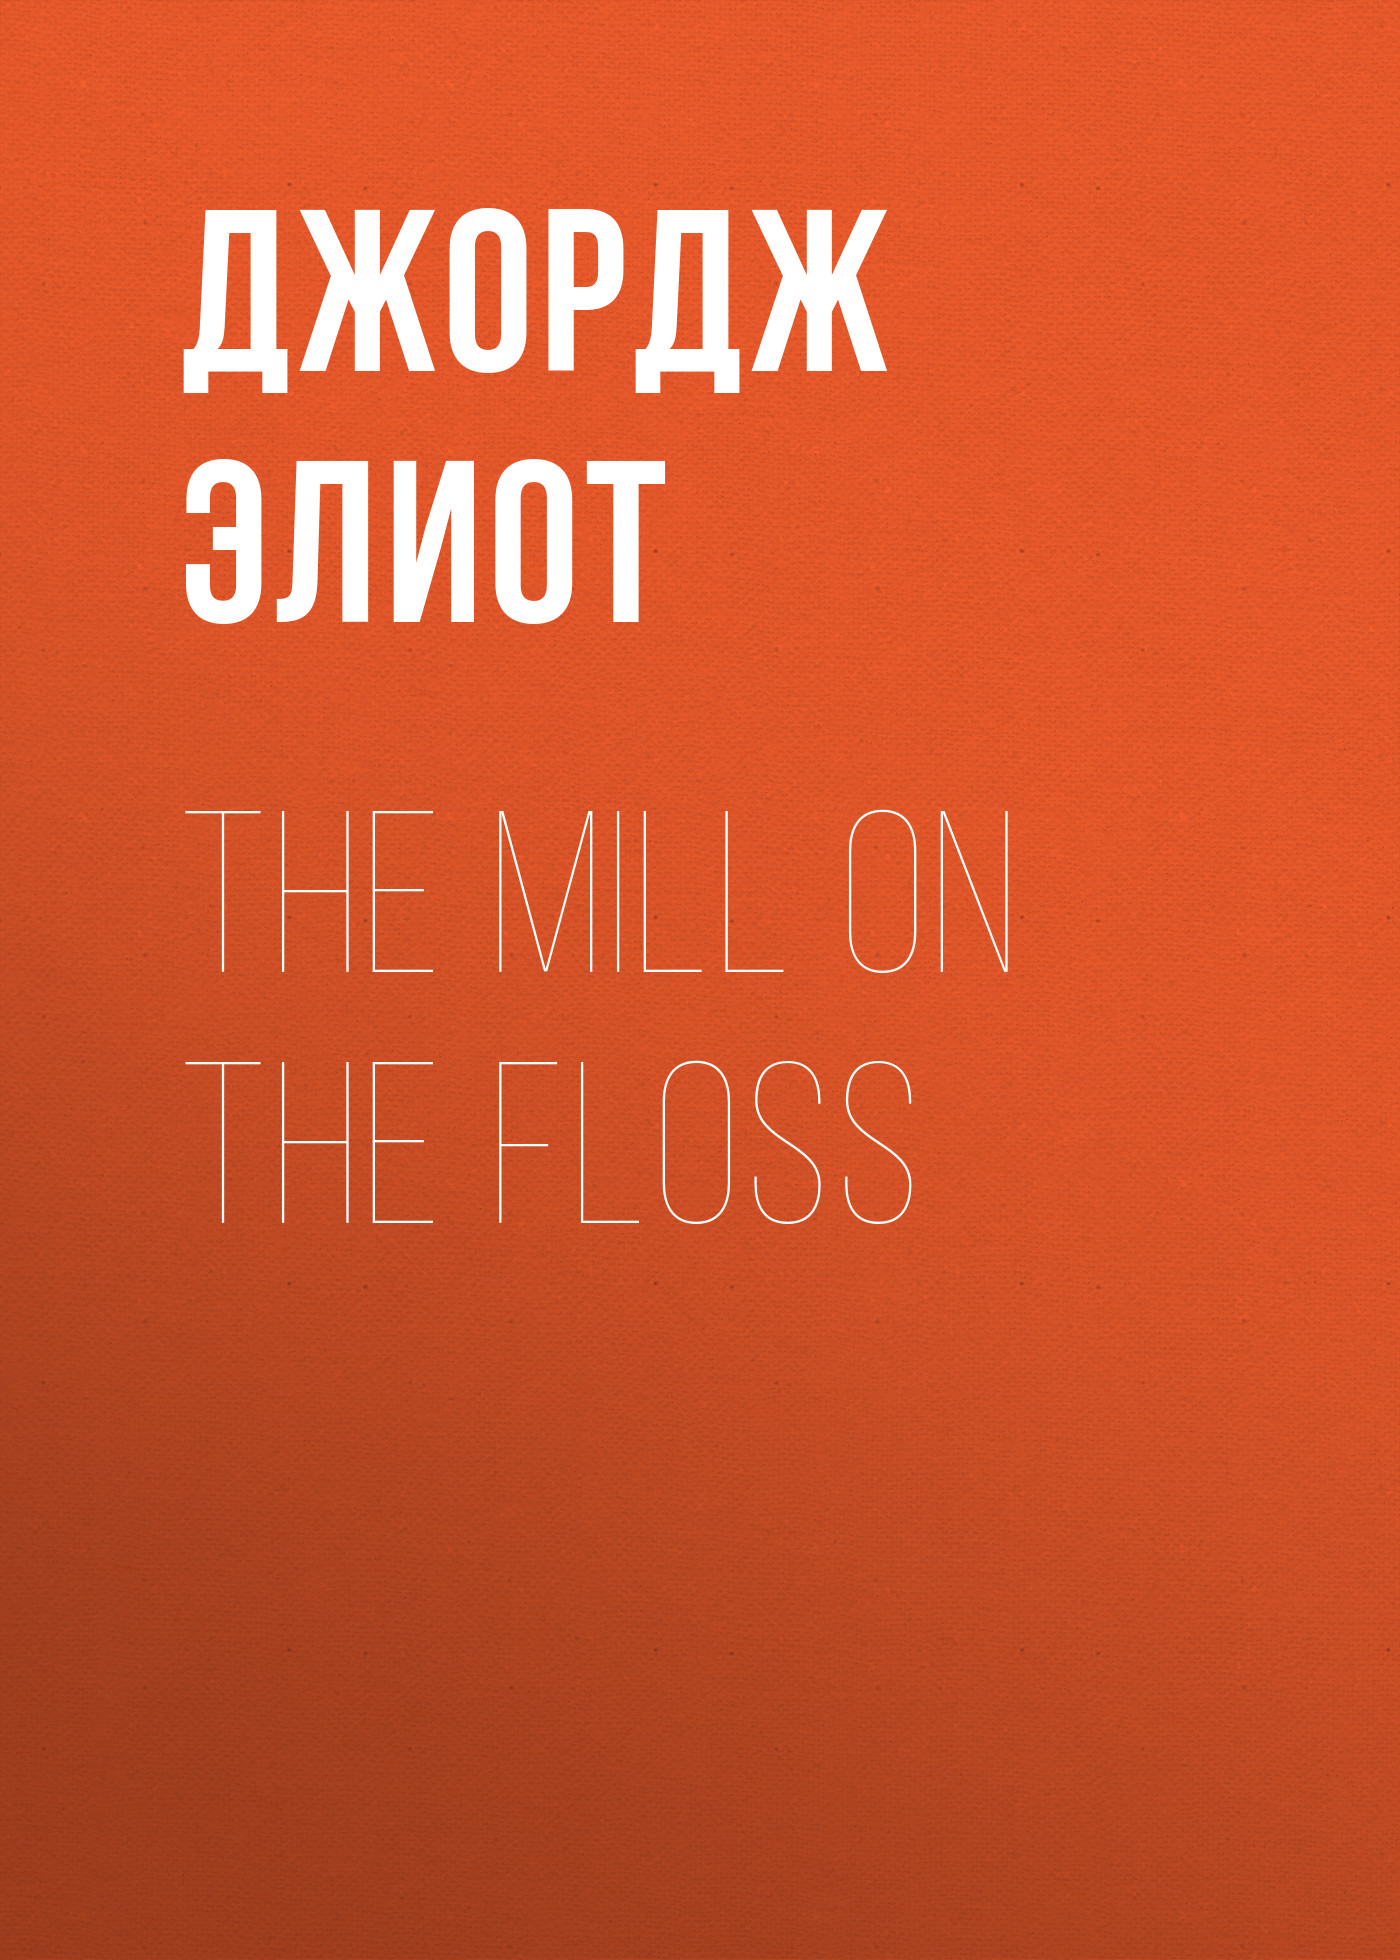 Джордж Элиот The Mill on the Floss джордж элиот brother jacob